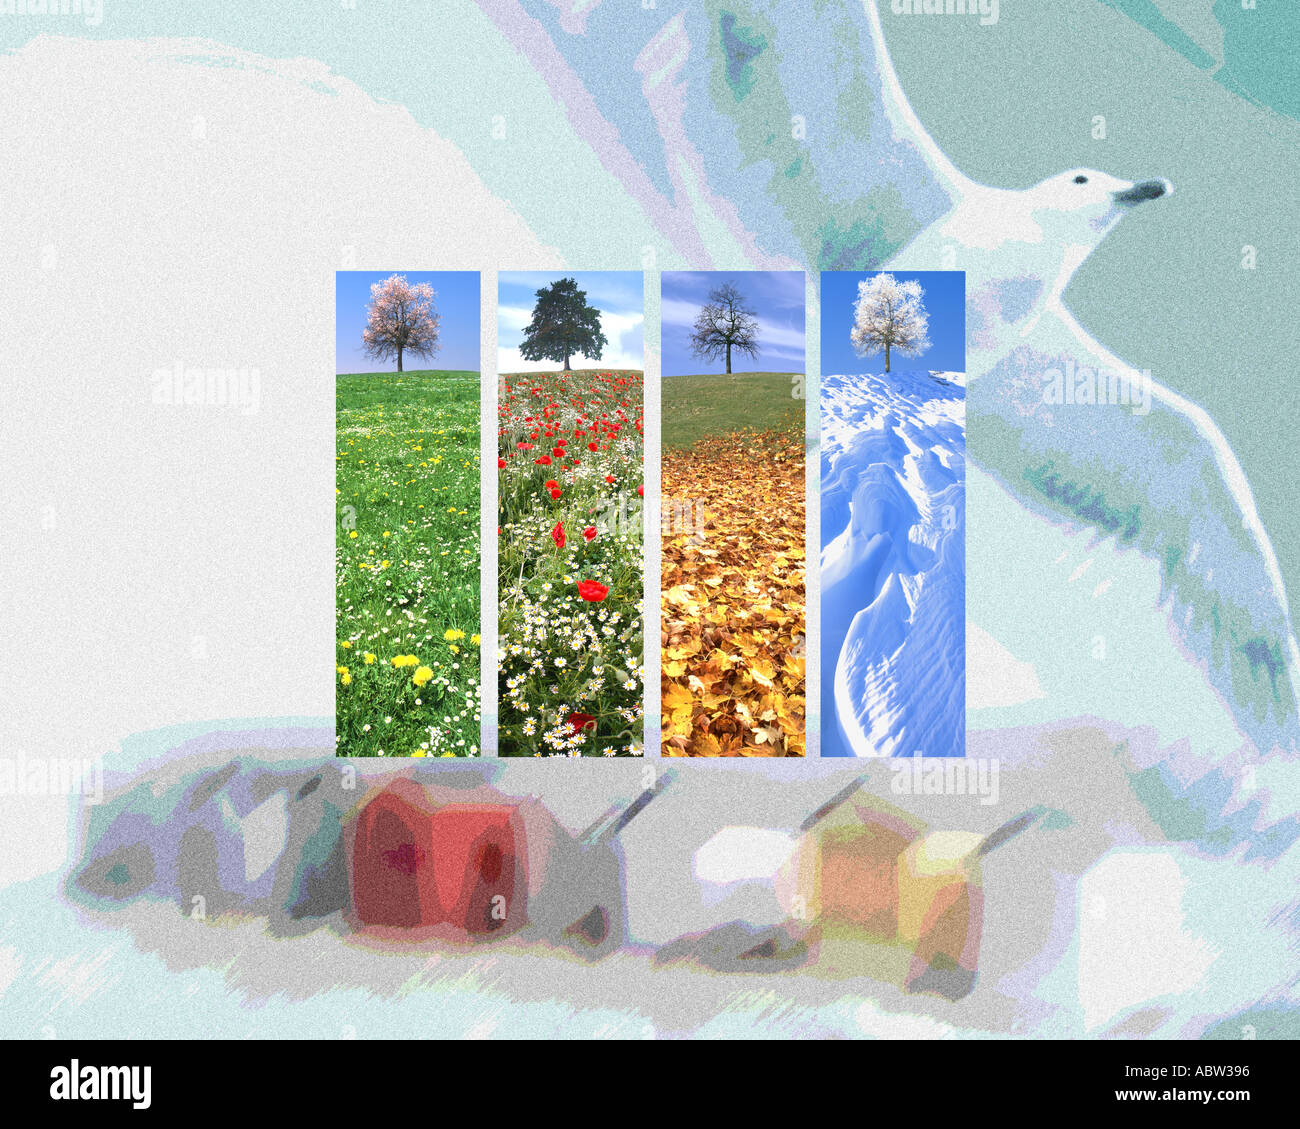 DIGITAL ART: The Four Seasons - Stock Image